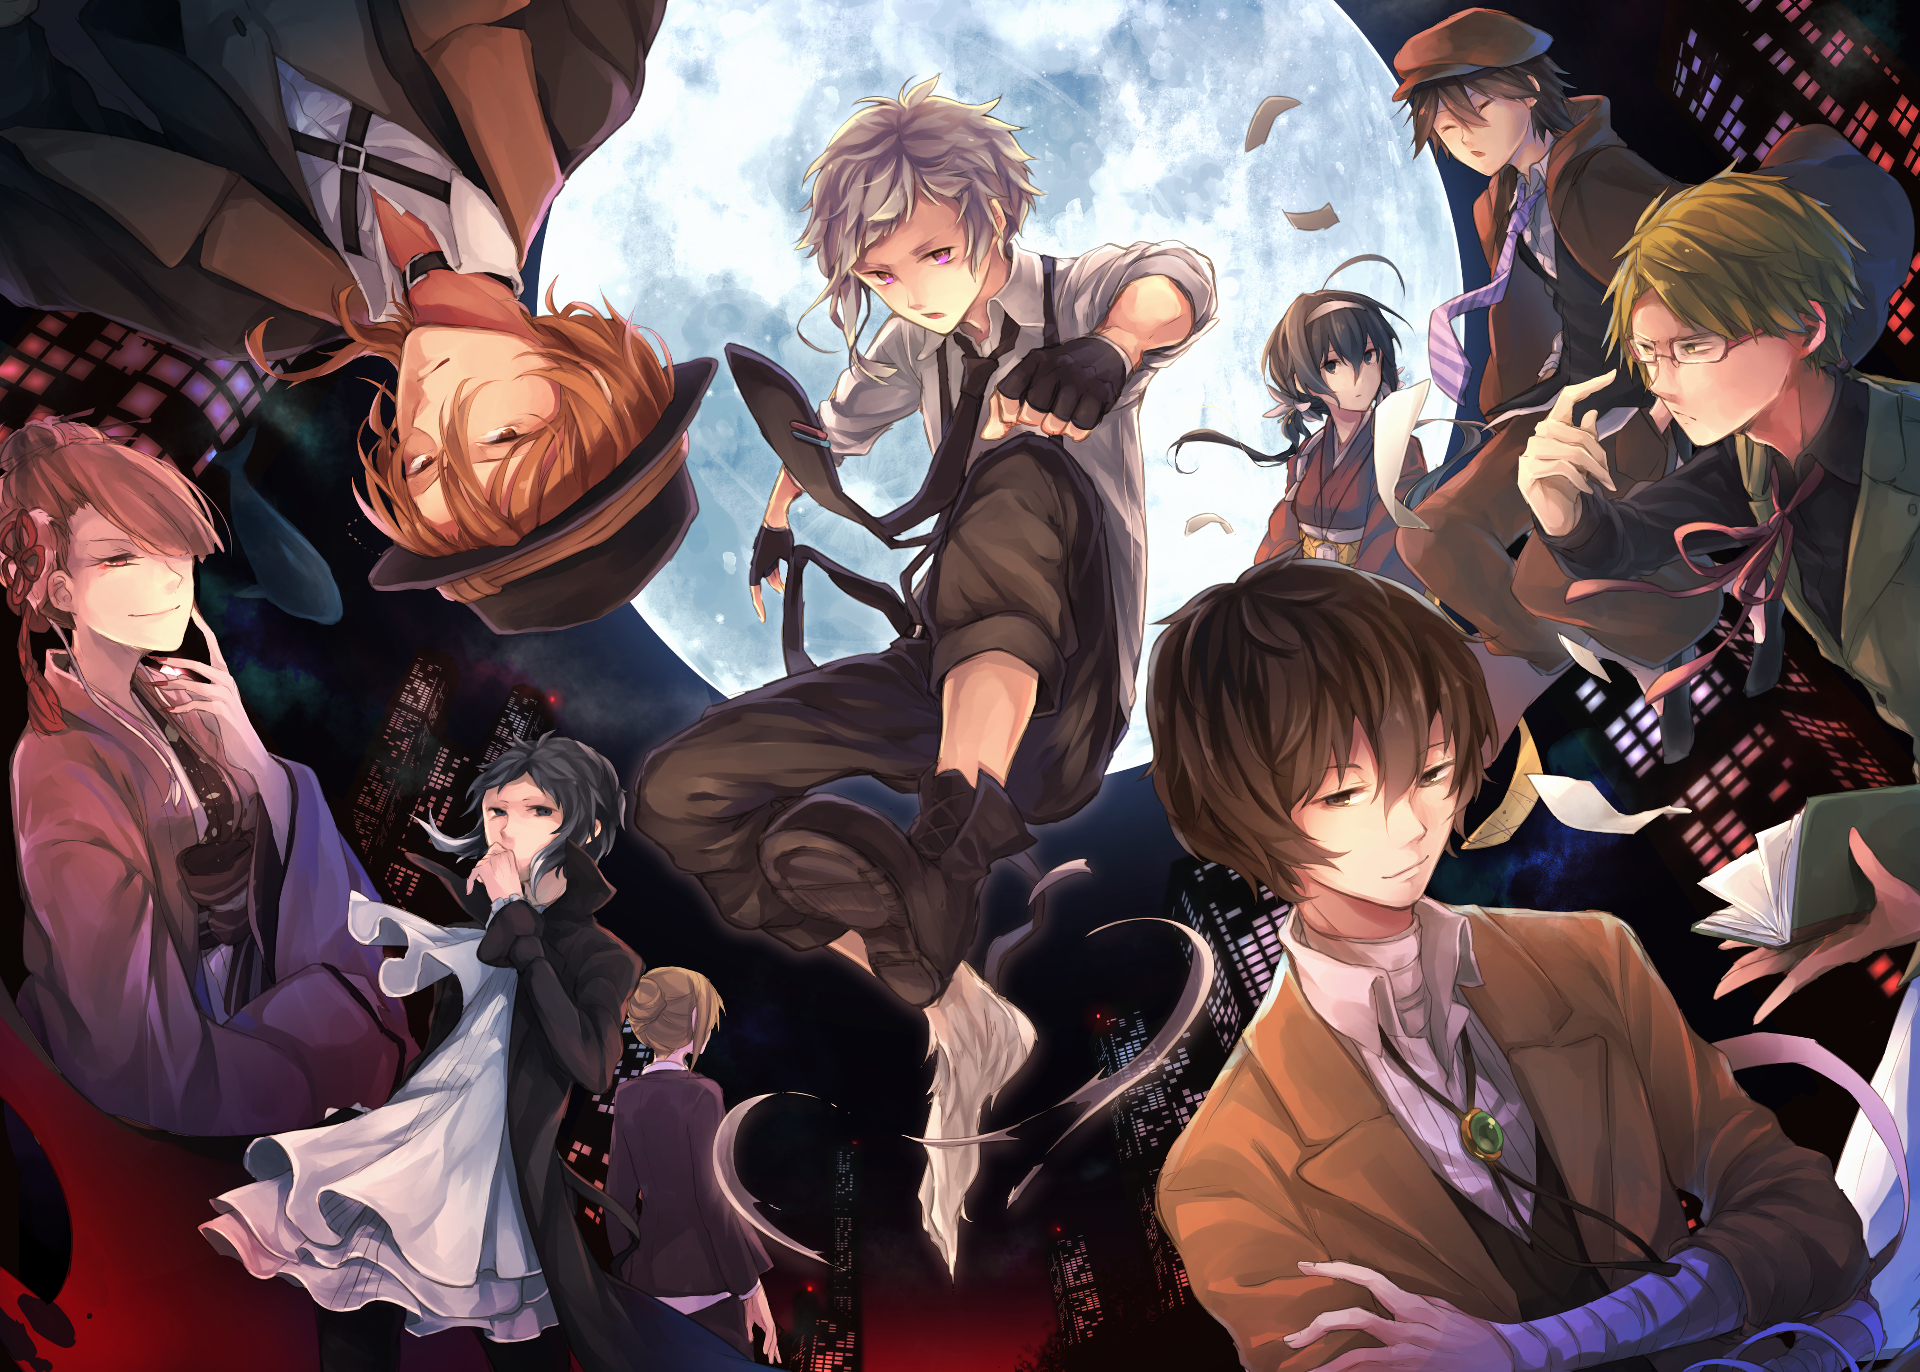 View, download, comment, and rate this 1920x1372 Bungou